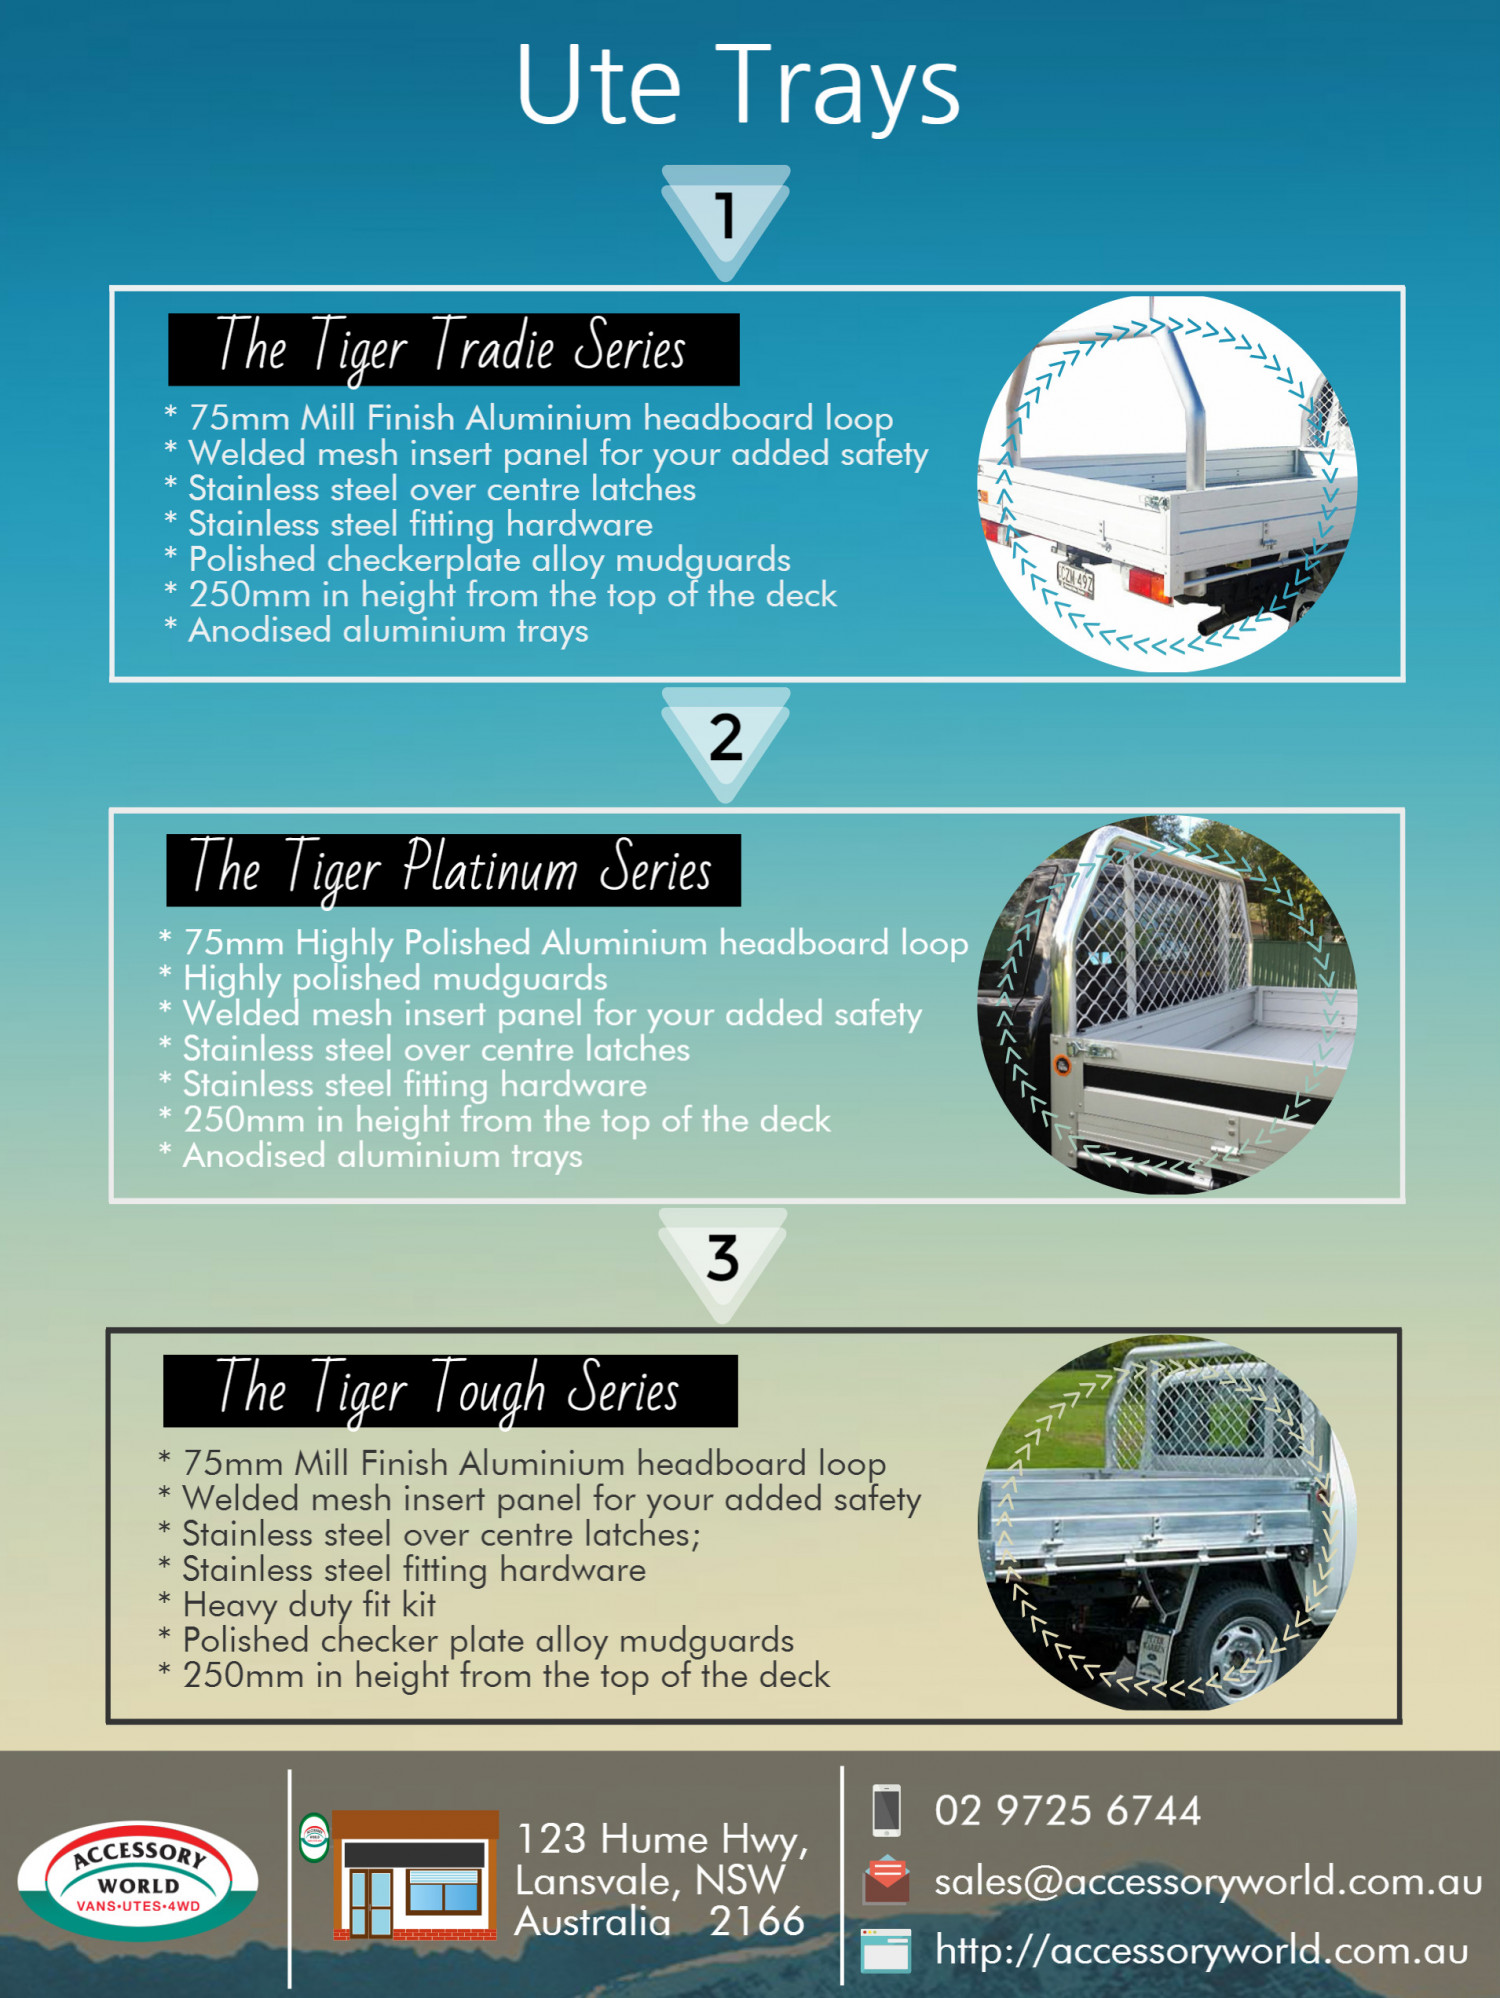 Types of Ute Trays Infographic